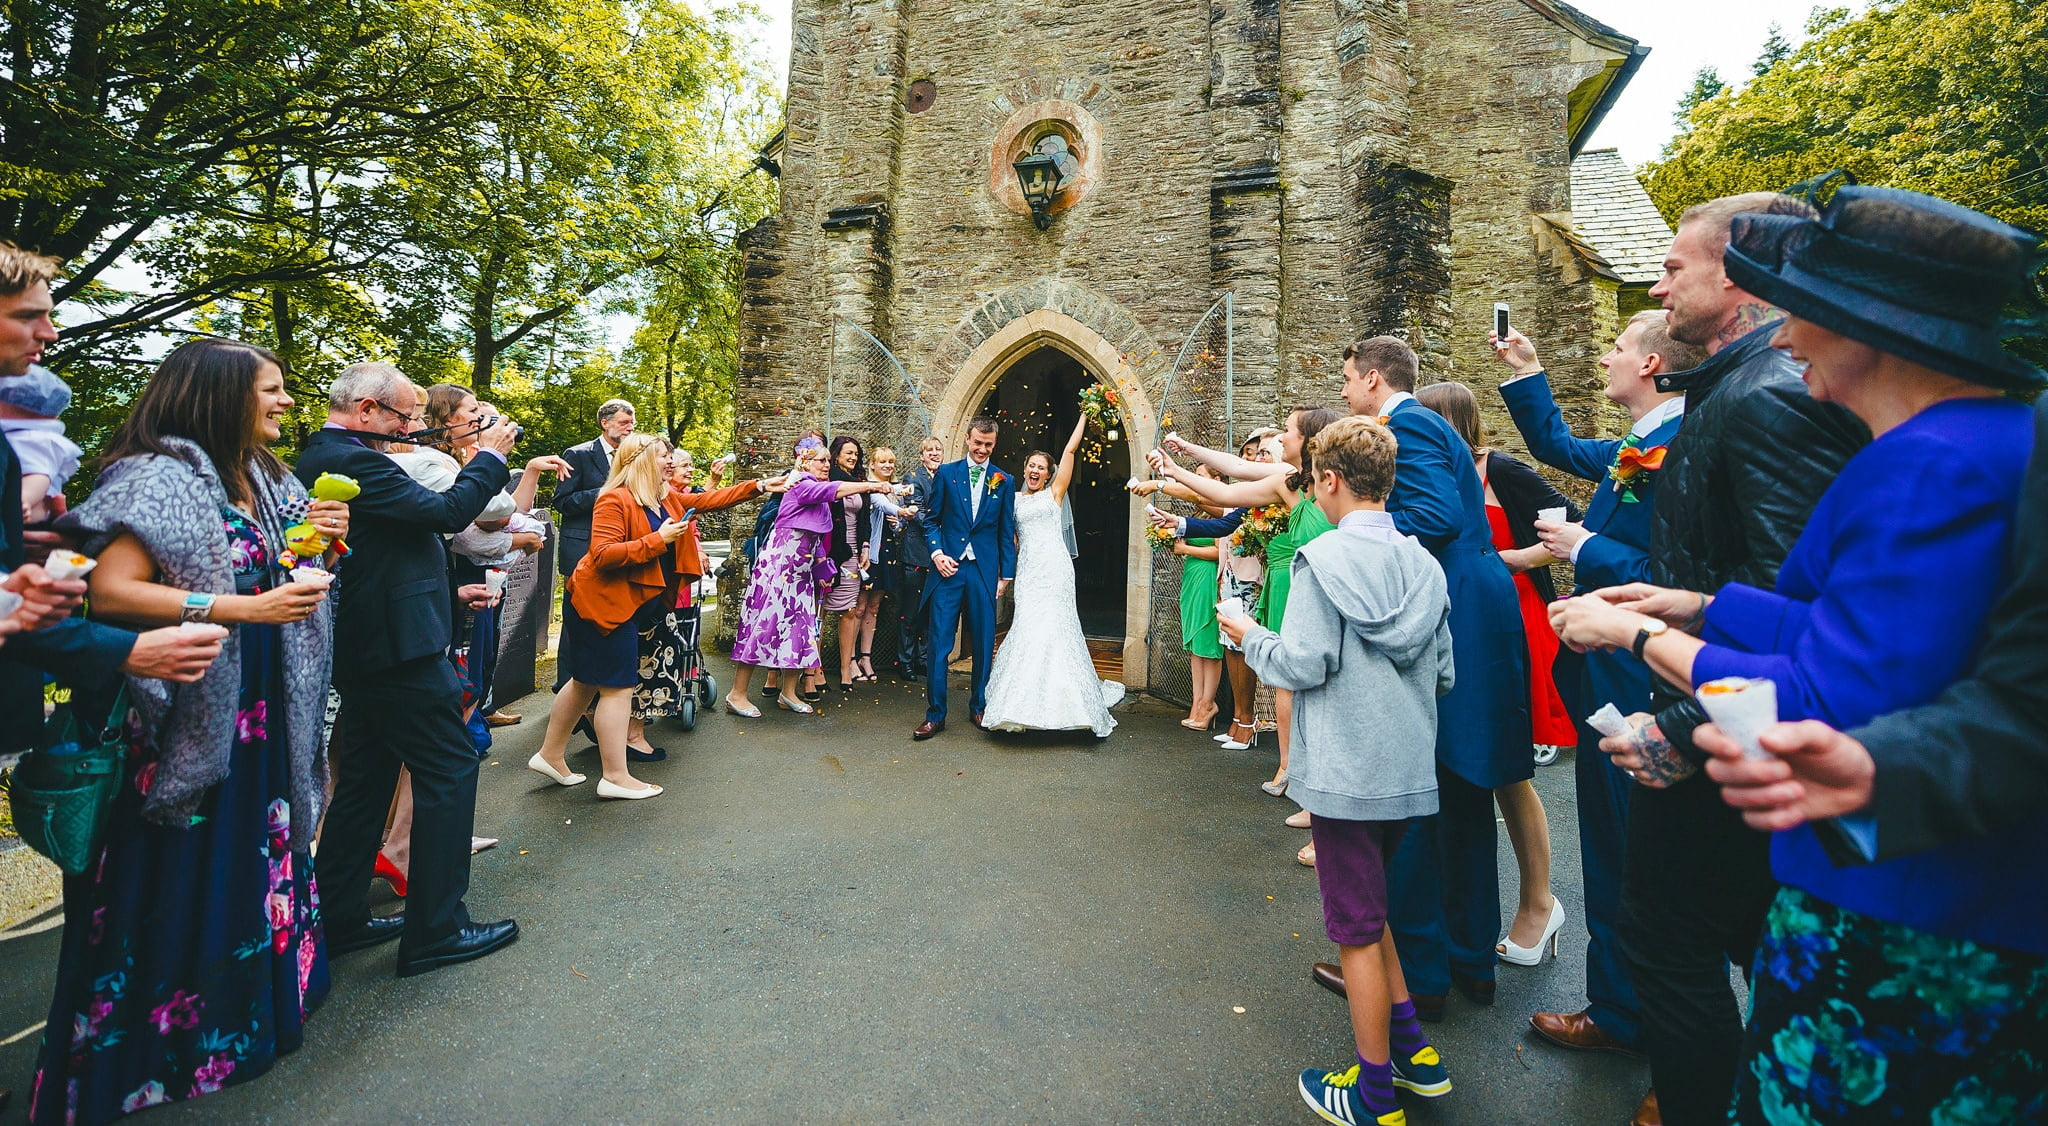 Midlands wedding photography - 2015 Review 11